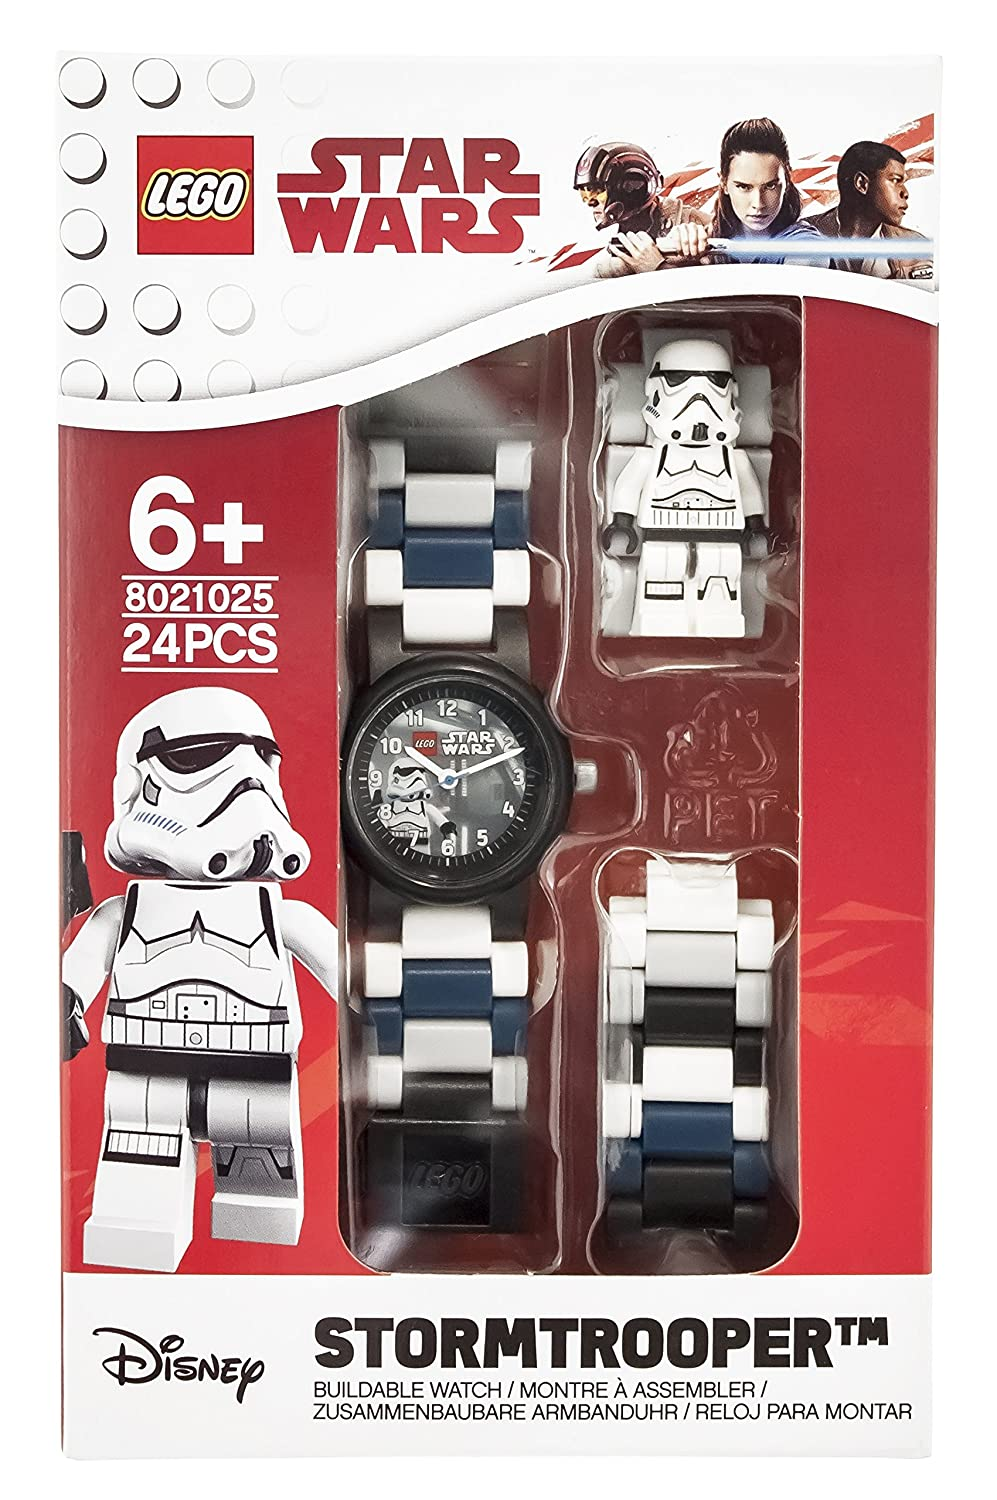 Amazon.com: LEGO Watches and Clocks Boys Star Wars Stormtrooper Quartz Plastic Casual watch, Color:Black (Model: 8021025): Clictime: Watches